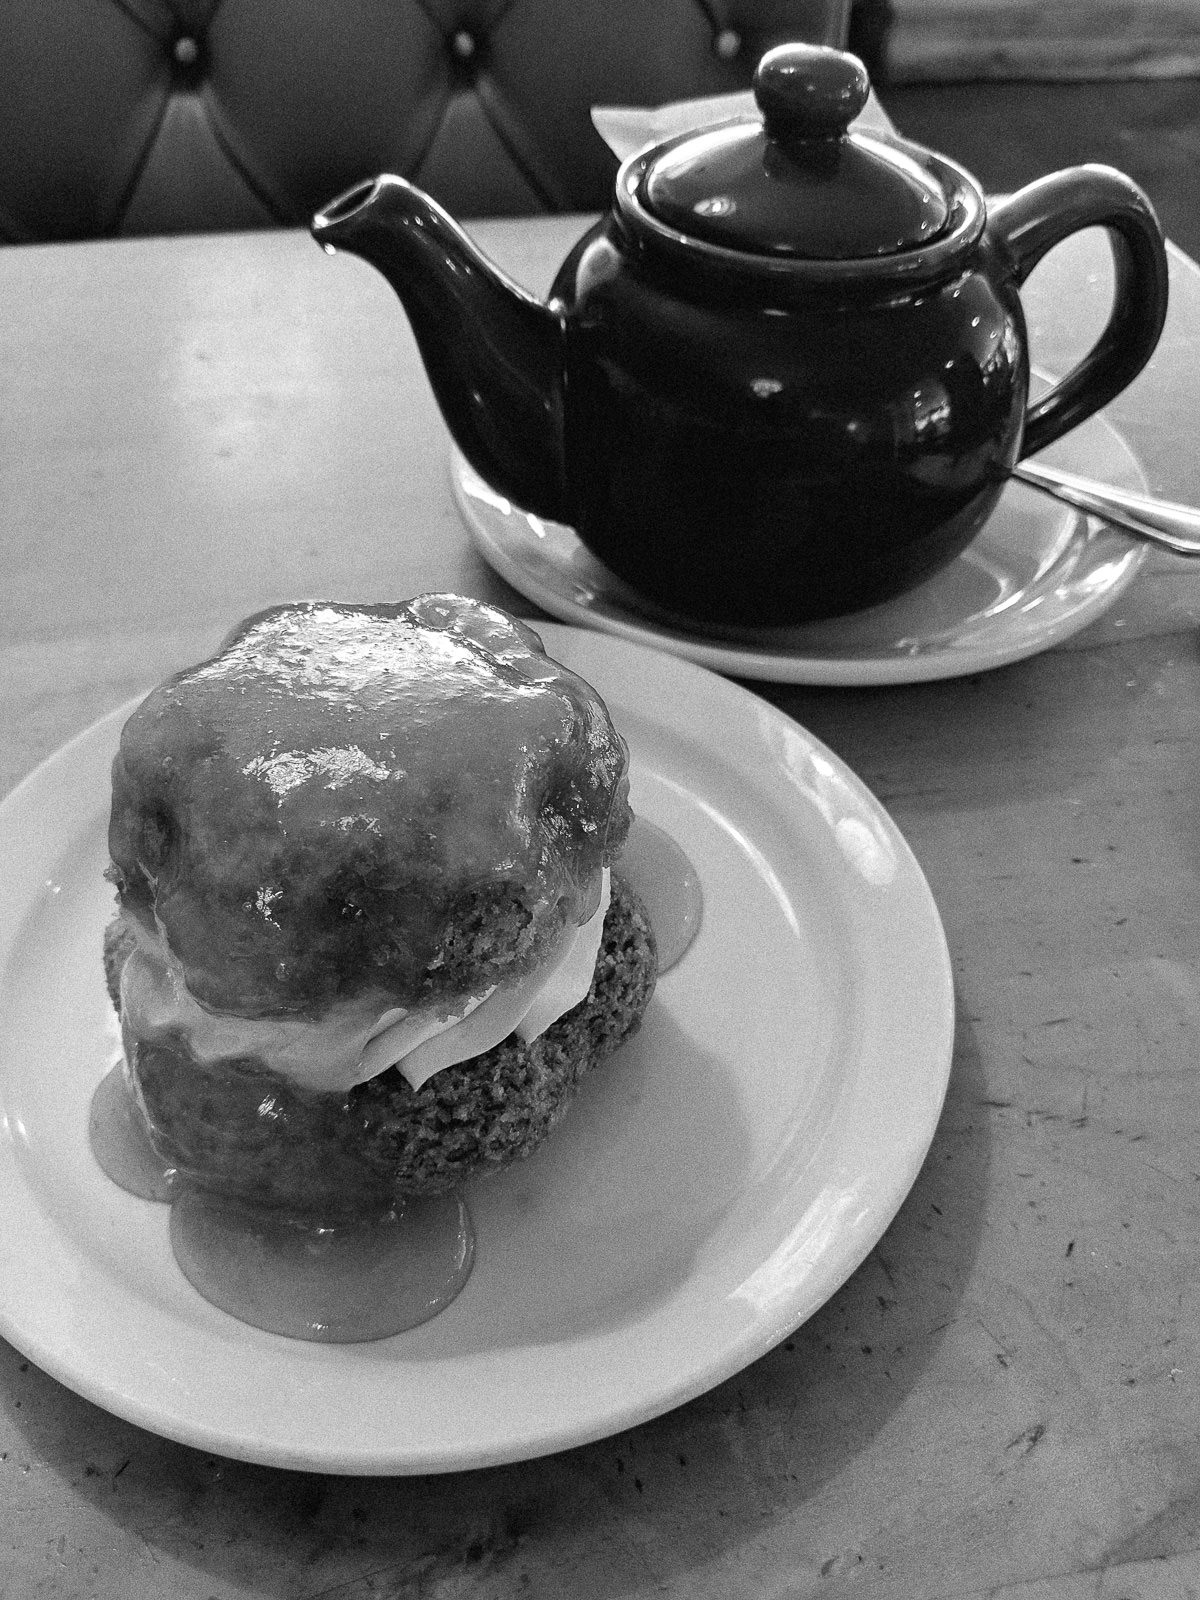 Day 135- 365 Day B&W Photo Challenge - Afternoon Tea at the Tasty Harmony in Fort Collins - Google Pixel 3, VSCO Ilford HP5 Preset